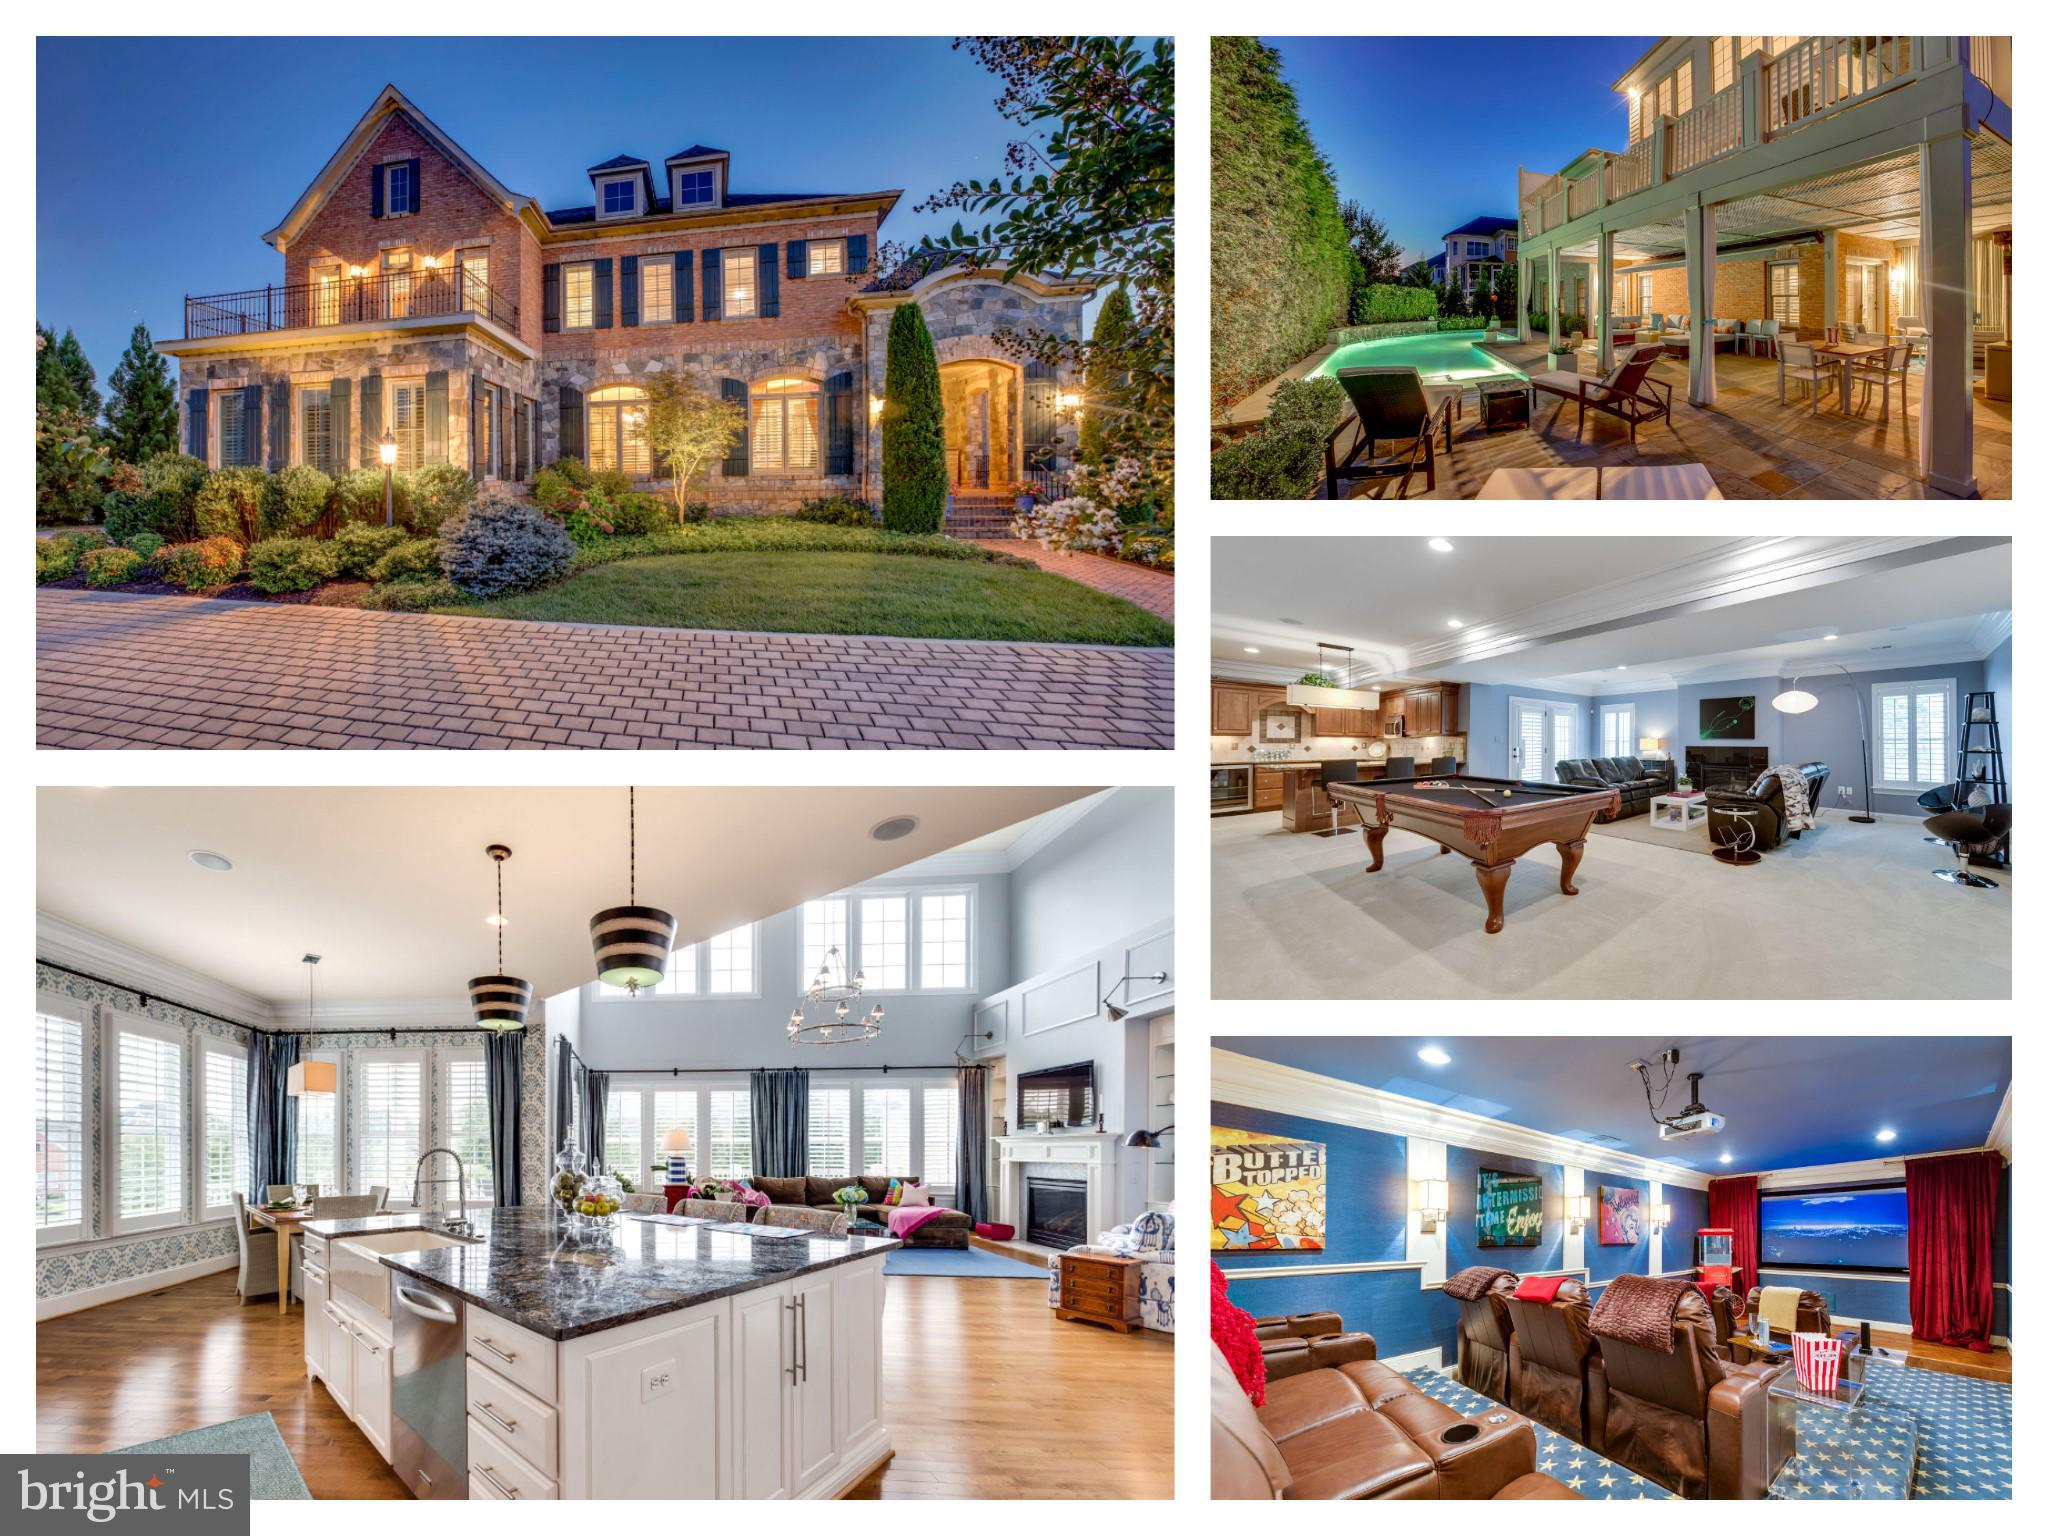 Award Winning, Luxury Community- Just 3 mile to Tysons/Mclean/Reston! Like NEW 5 BDR | 6.5 BA | 3-Car Garage | Salt  Water Pool on Premium Lot. Over 150K of Recent Updates! Custom High-End Finishes - Gourmet Kitchen opens to 2 Story FR, 2 Masters (MAIN & UL), Sun-filled LL w/ 2nd kitchen/bar, Custom Theater, huge rec room, & gym. Walk-out to private outdoor living. OPEN BY APPOINTMENT